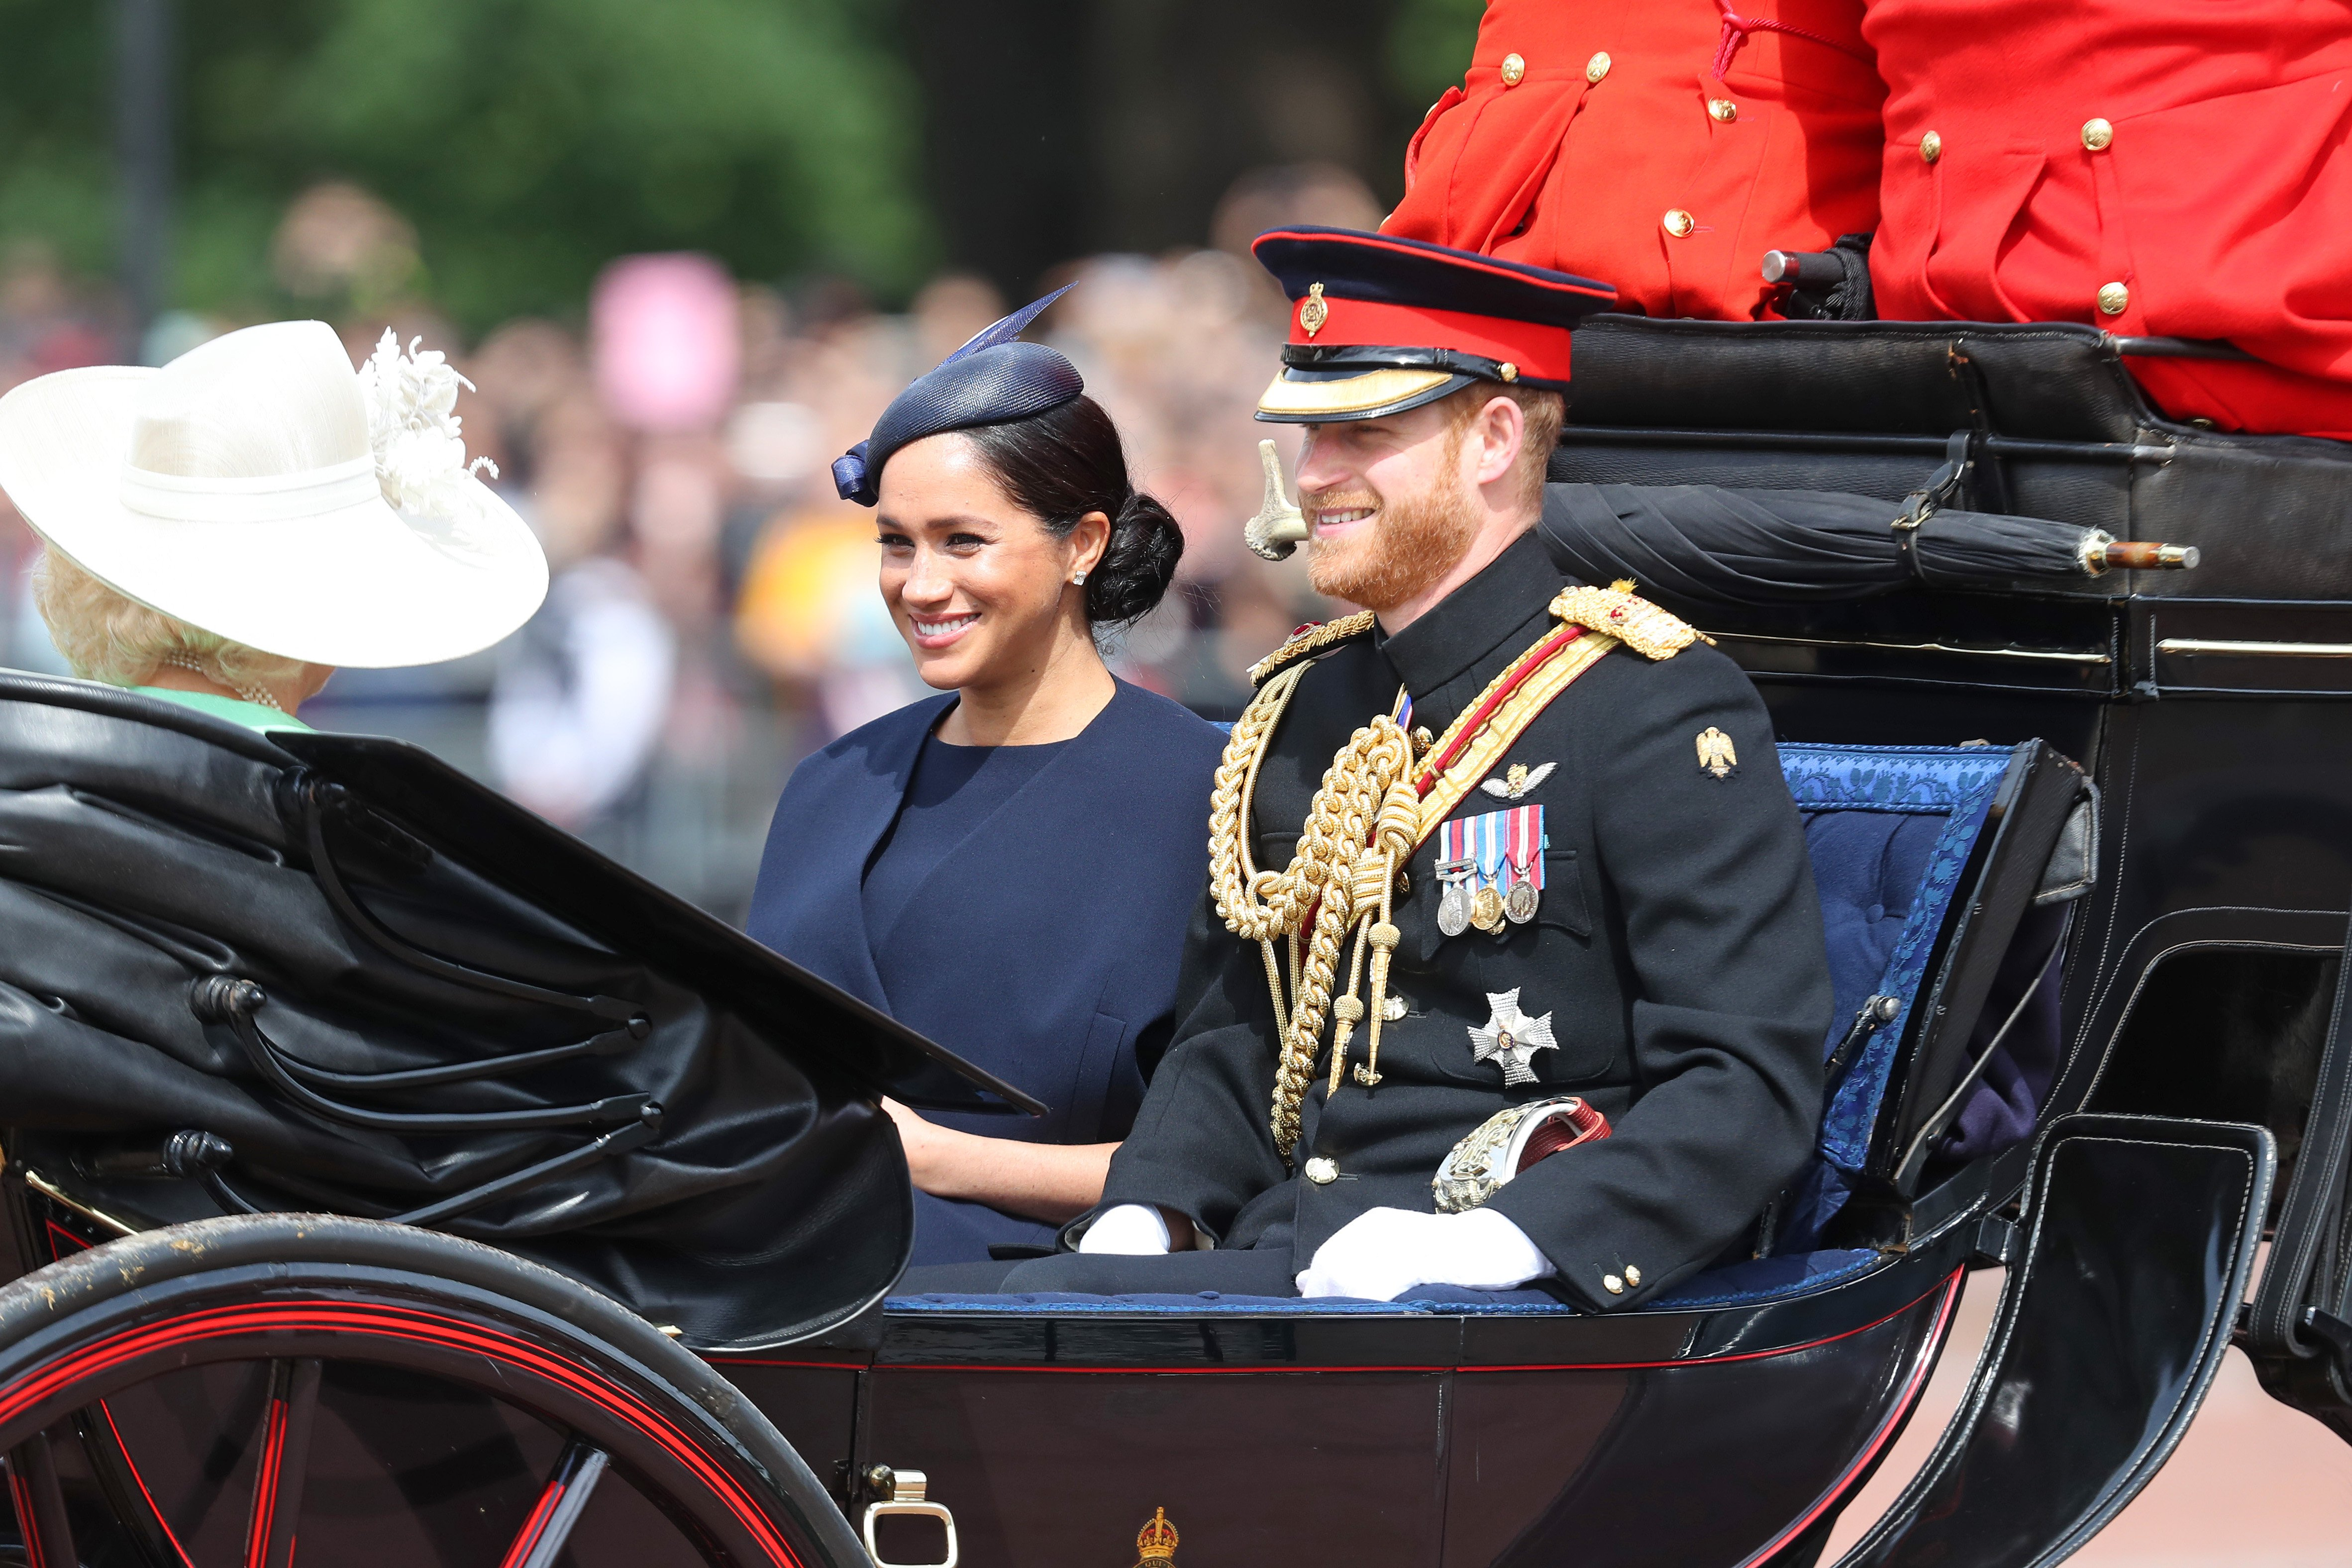 Meghan Markle and Prince Harry at Trooping The Colour, the Queen's annual birthday parade, on June 08, 2019 in London, England | Photo: Getty Images